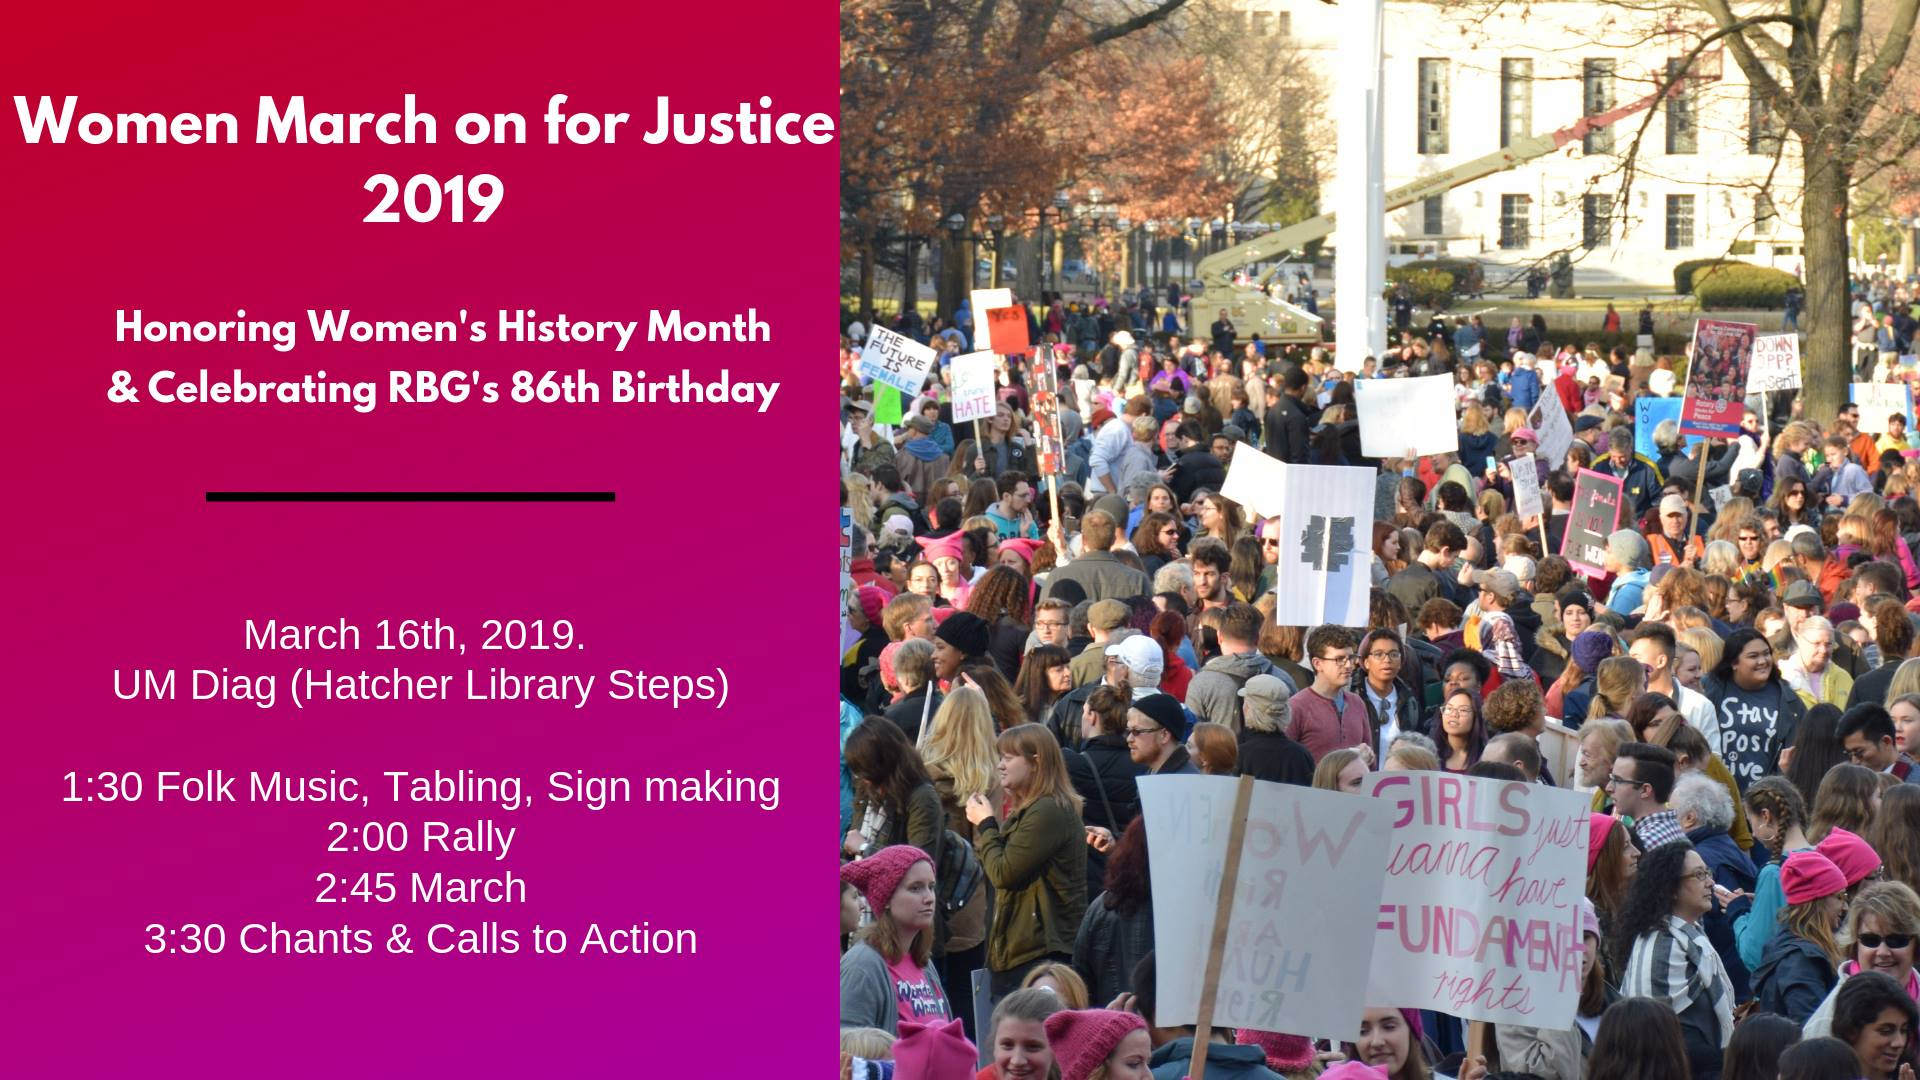 Women March on for Justice